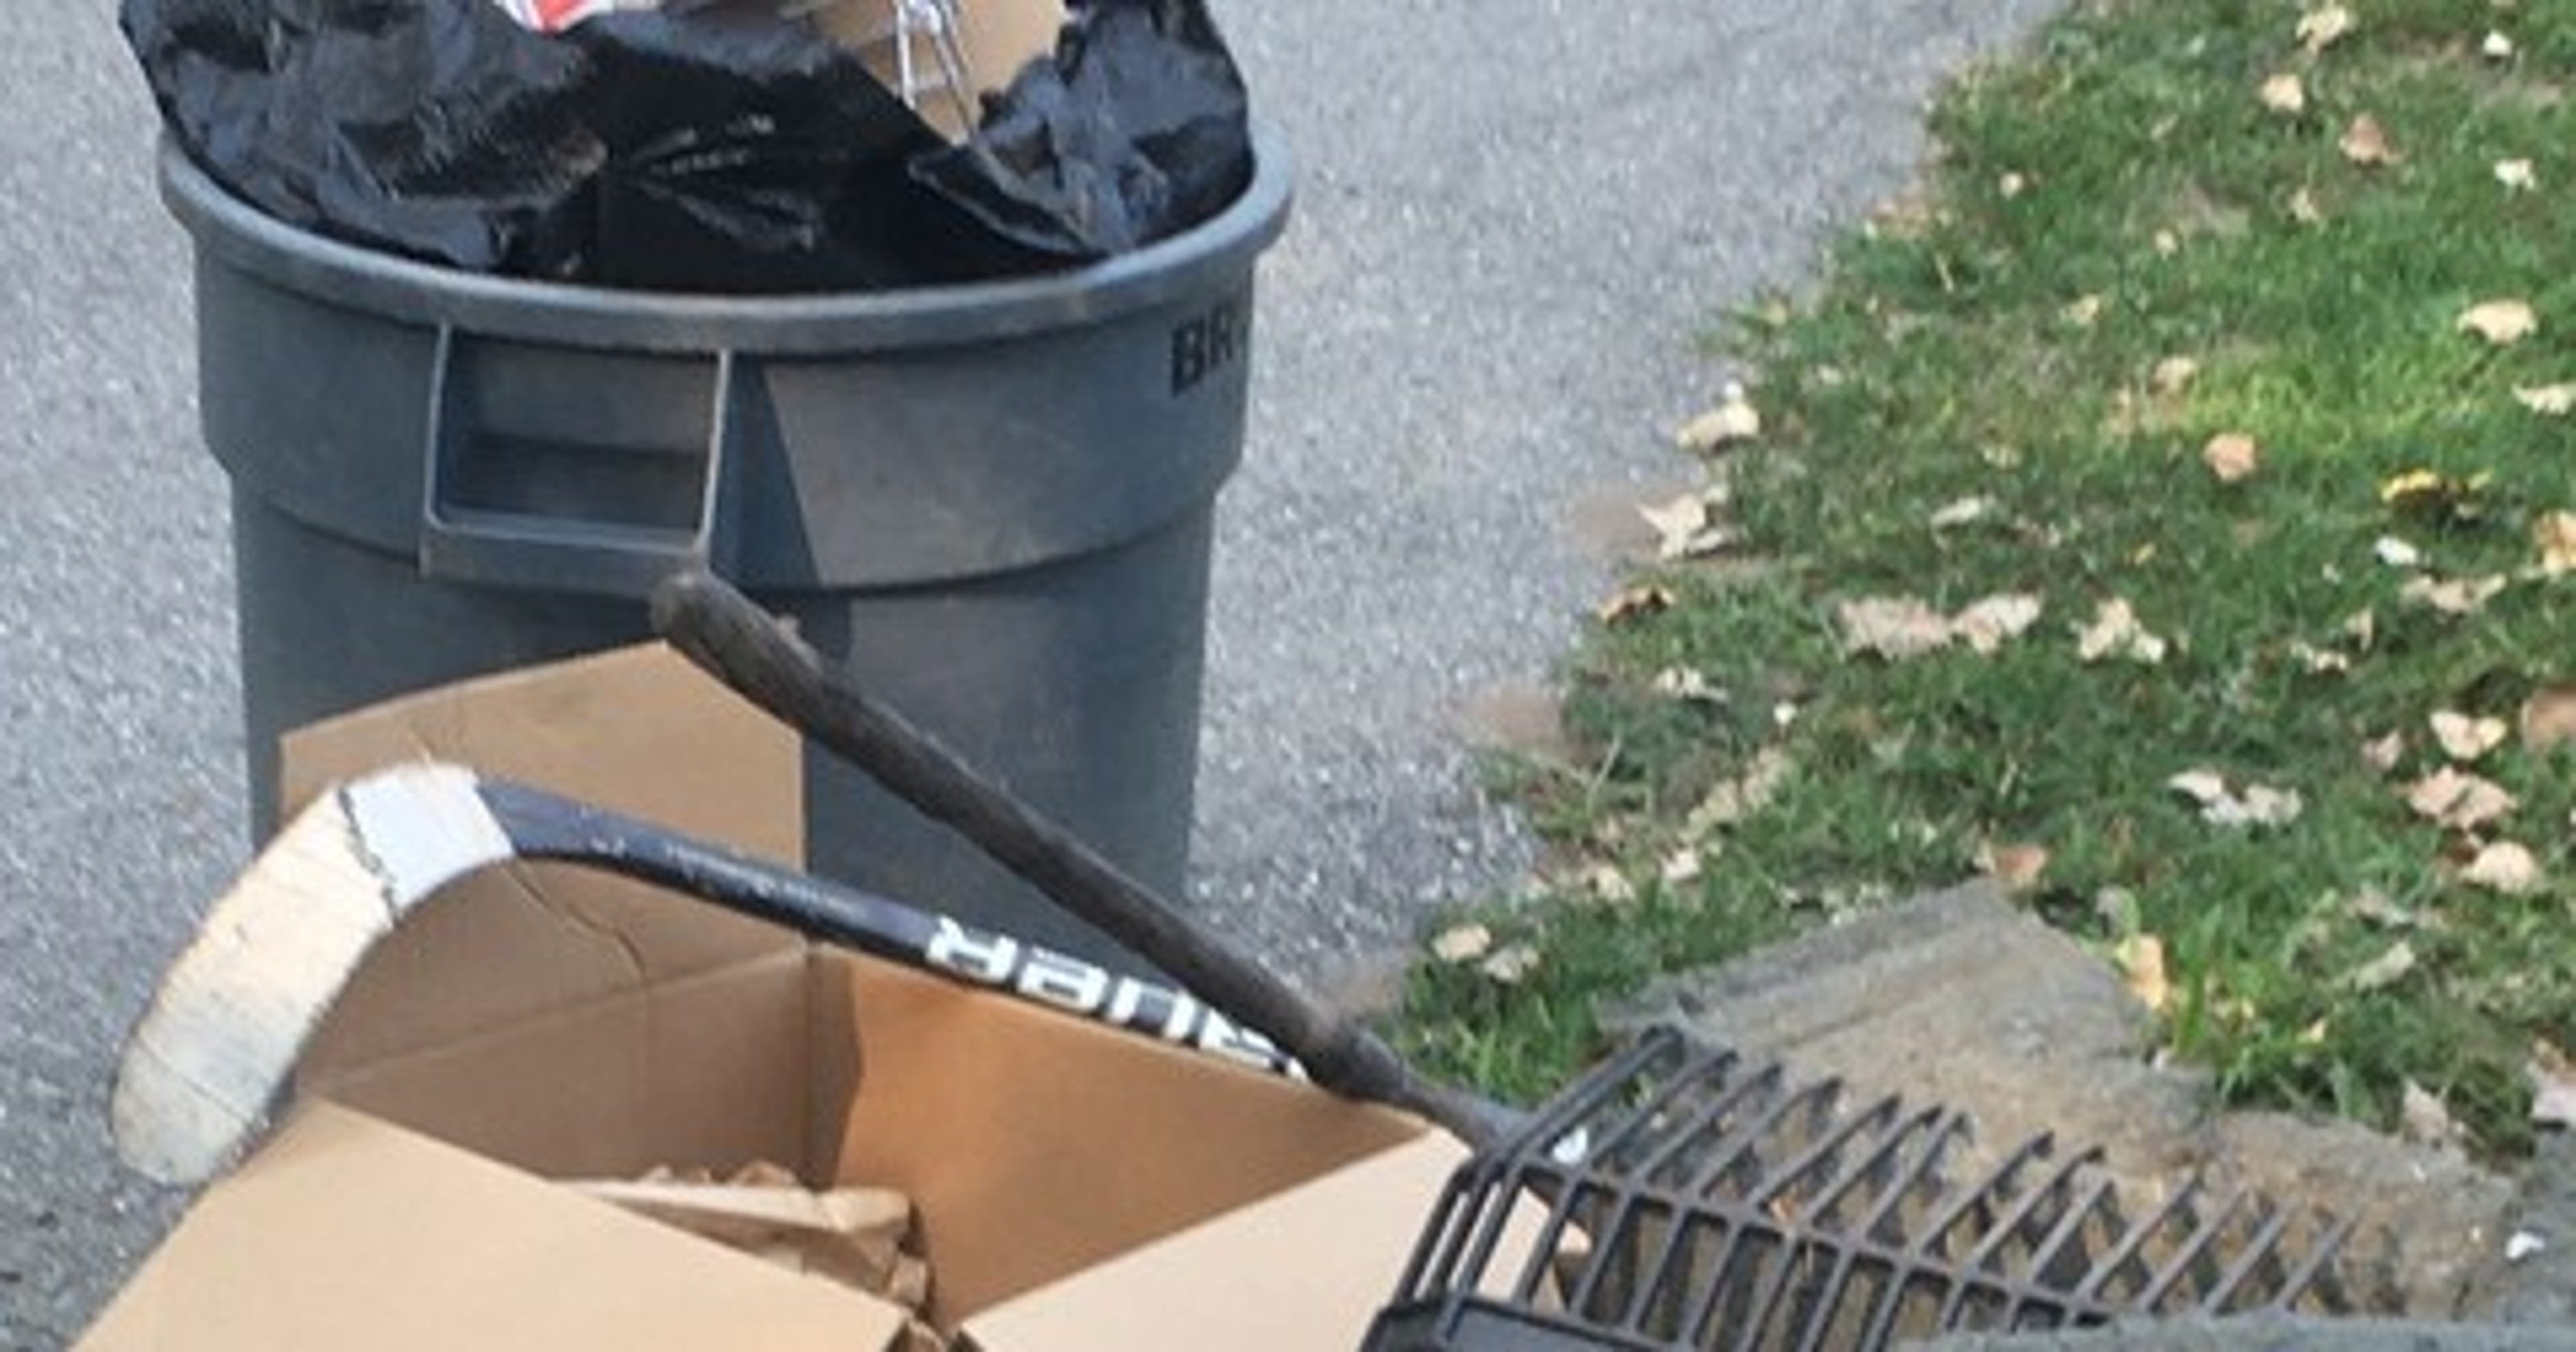 Garbage piling up in pricey Oakland Township